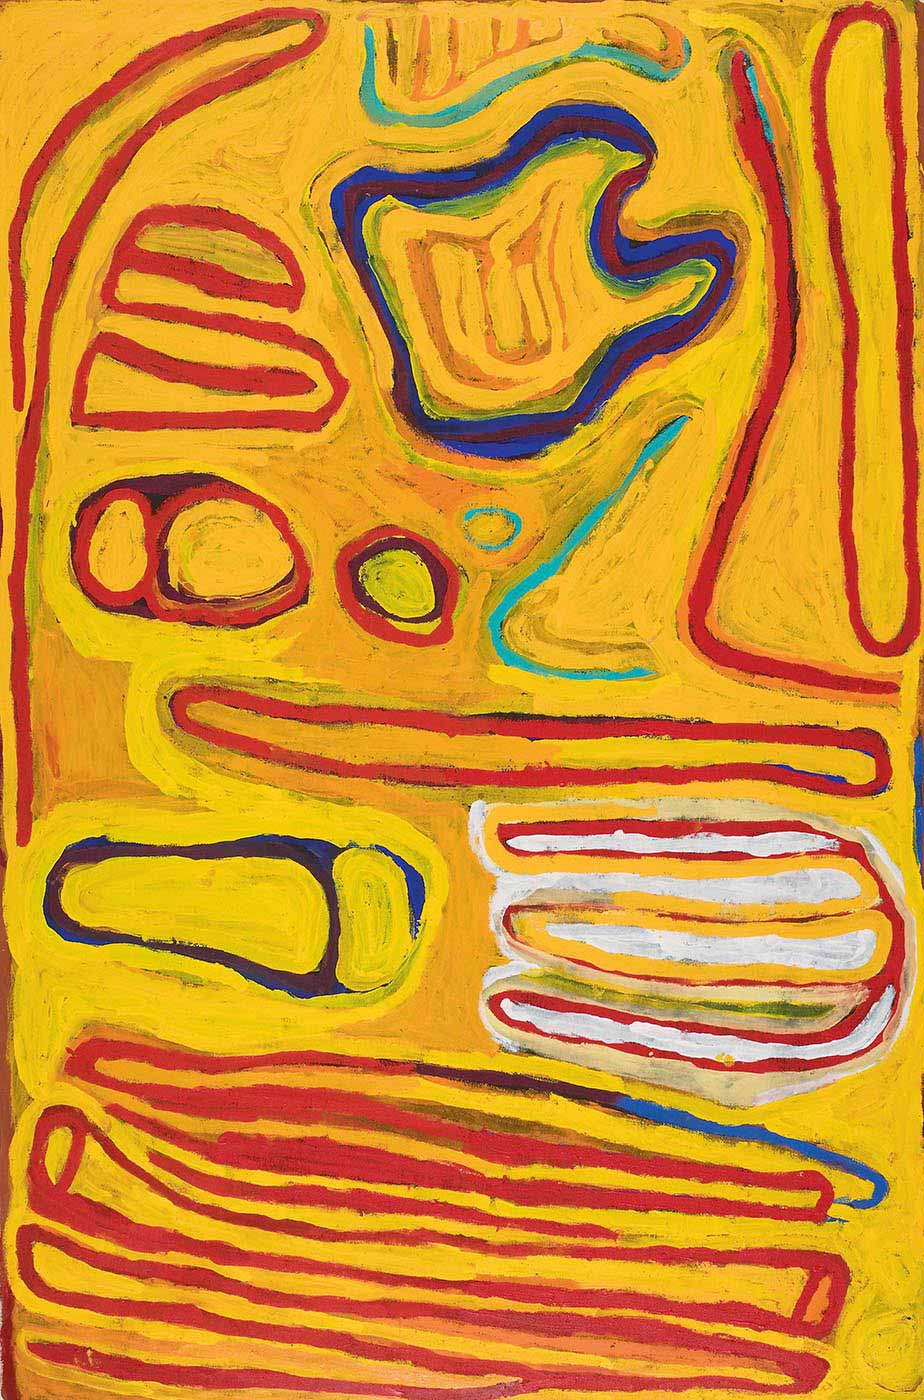 An acrylic painting on canvas of outlined motifs in bright colours on a predominantly yellow background. On one short side there is a red line motif that appears like uneven stripes with some connecting together. Next to that is a white, yellow and red three pronged motif and a blue pear shape overlaid with two yellow ovals. In the central section there is a red long thin outlined oblong, and at the other shortest end there are circles, V shapes in green and outlined shapes in red at both corners with a blue outlined shape between them. - click to view larger image